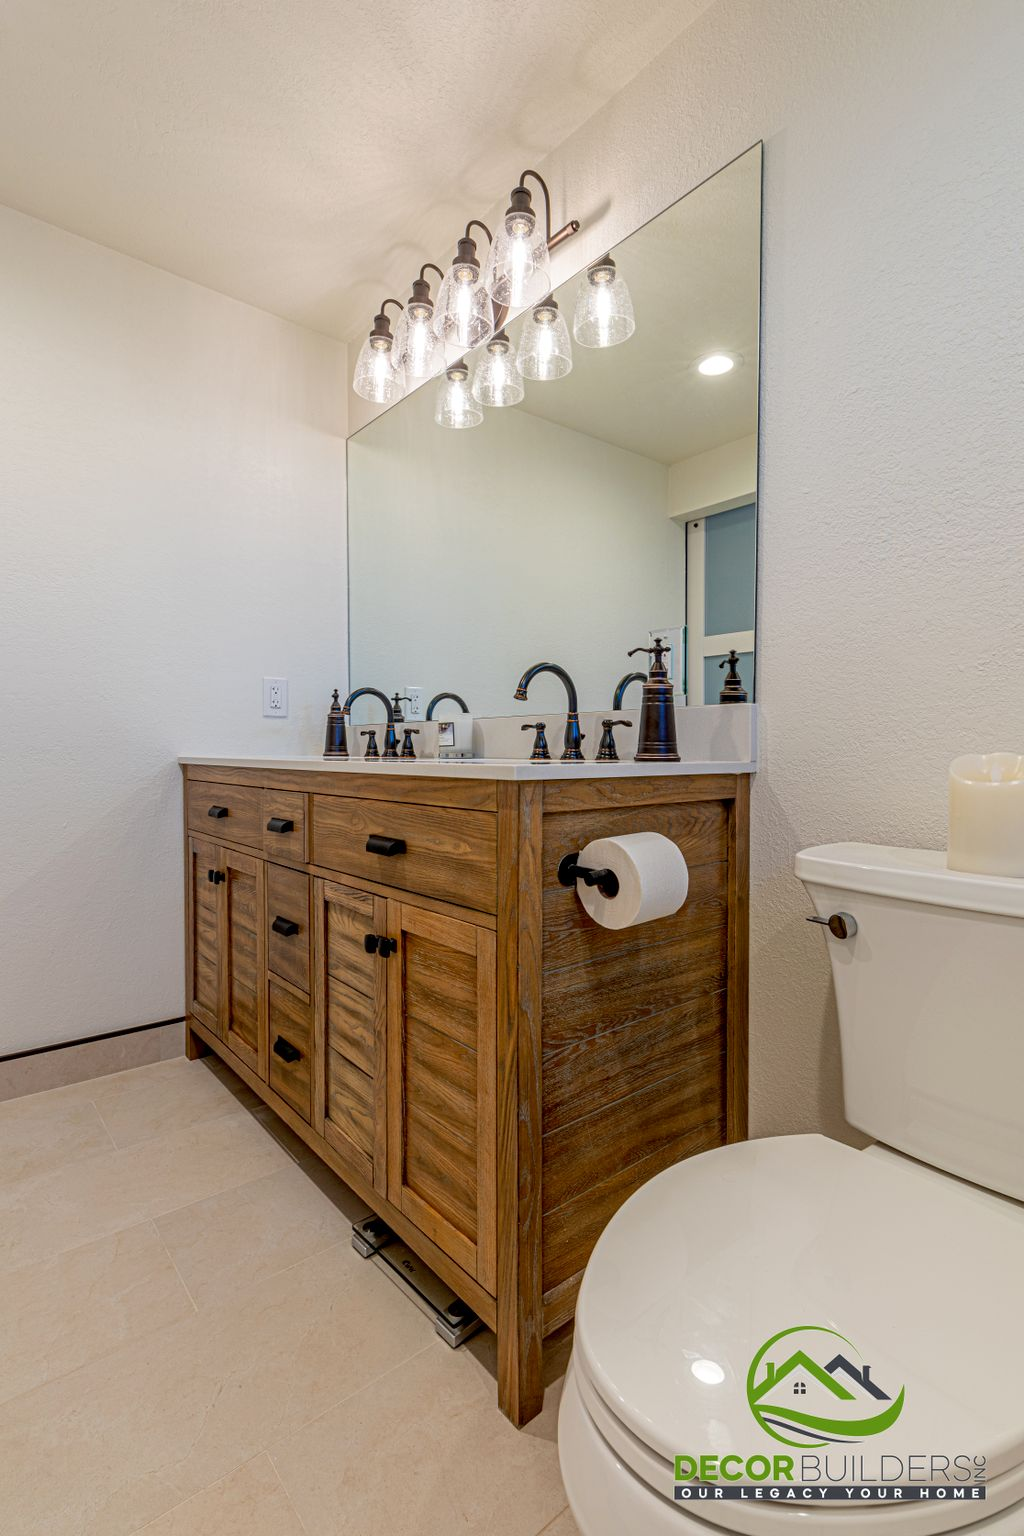 Foster City - Bathroom Remodeling